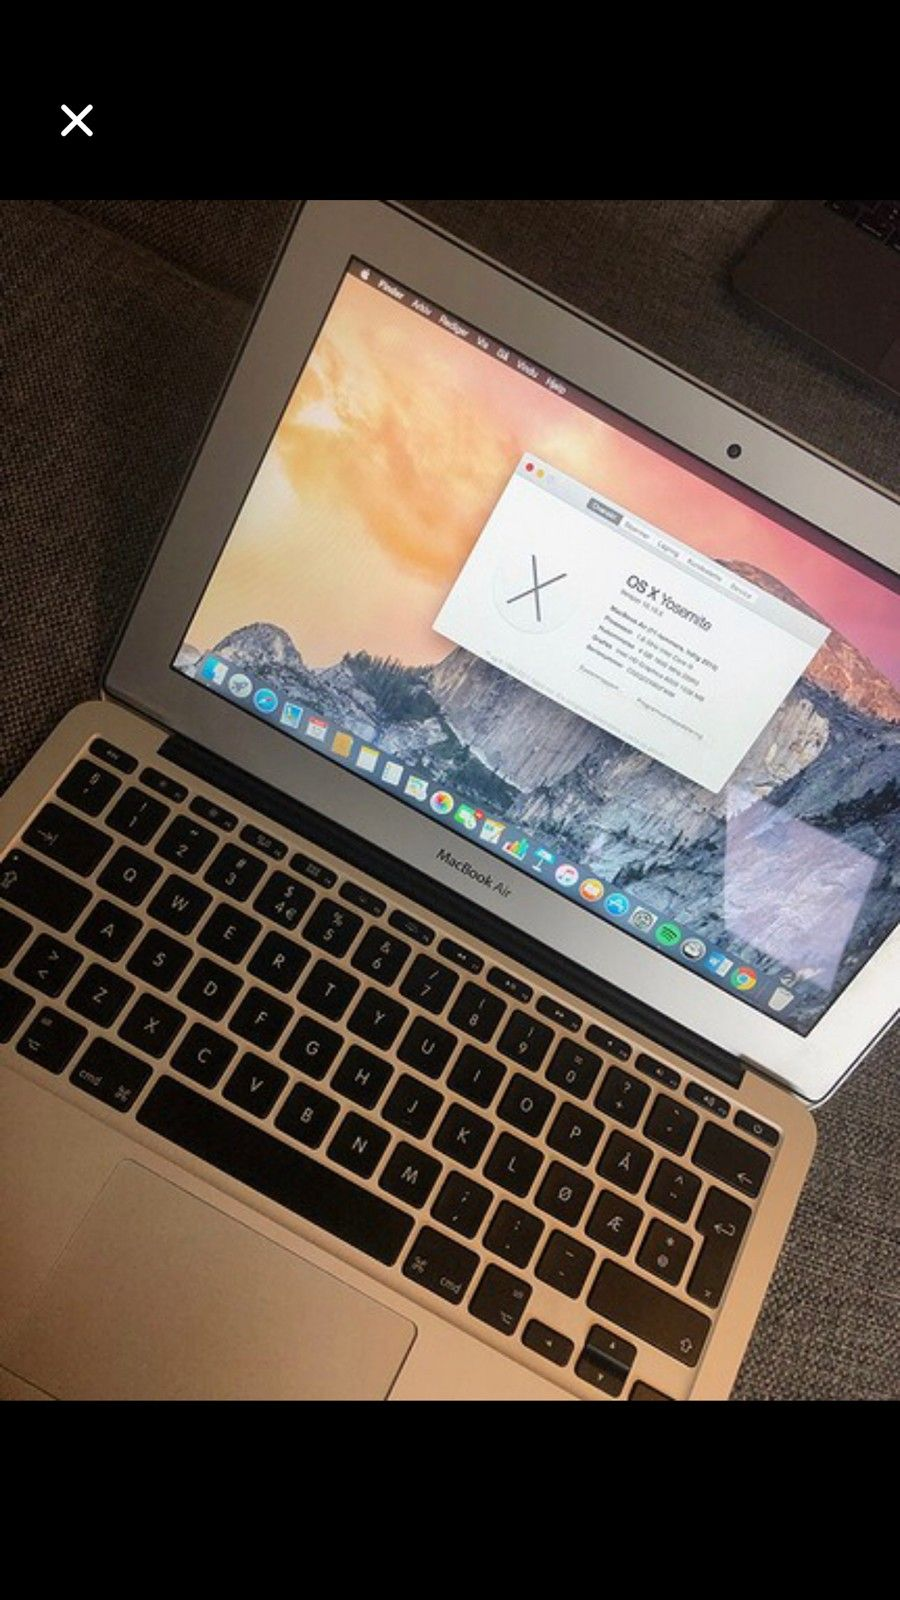 Macbook Air 11 2013 | FINN.no